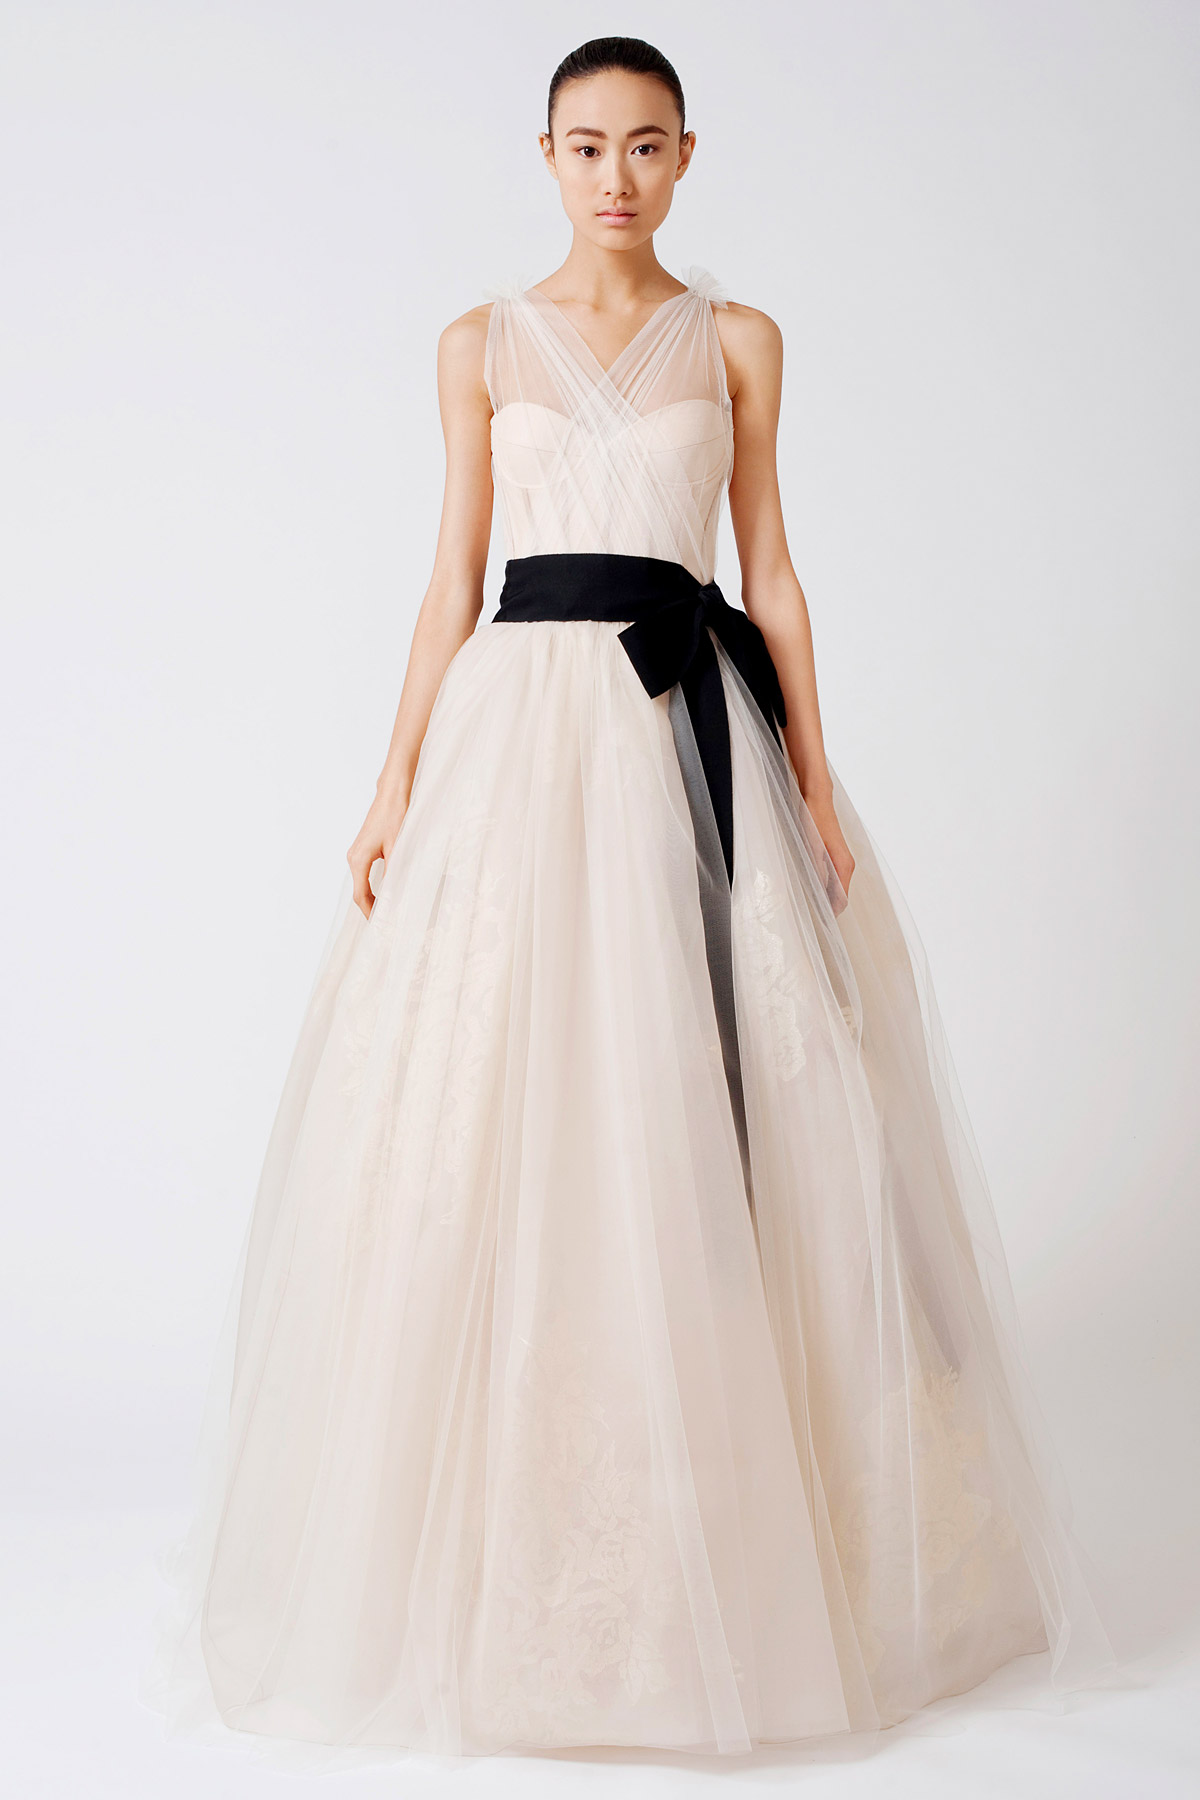 A simple guide for different wedding dress styles the natural waistline is the line that joins the bodice and the skirt of this vera wang wedding dress with a black ribbon belt this line falls above the ombrellifo Images